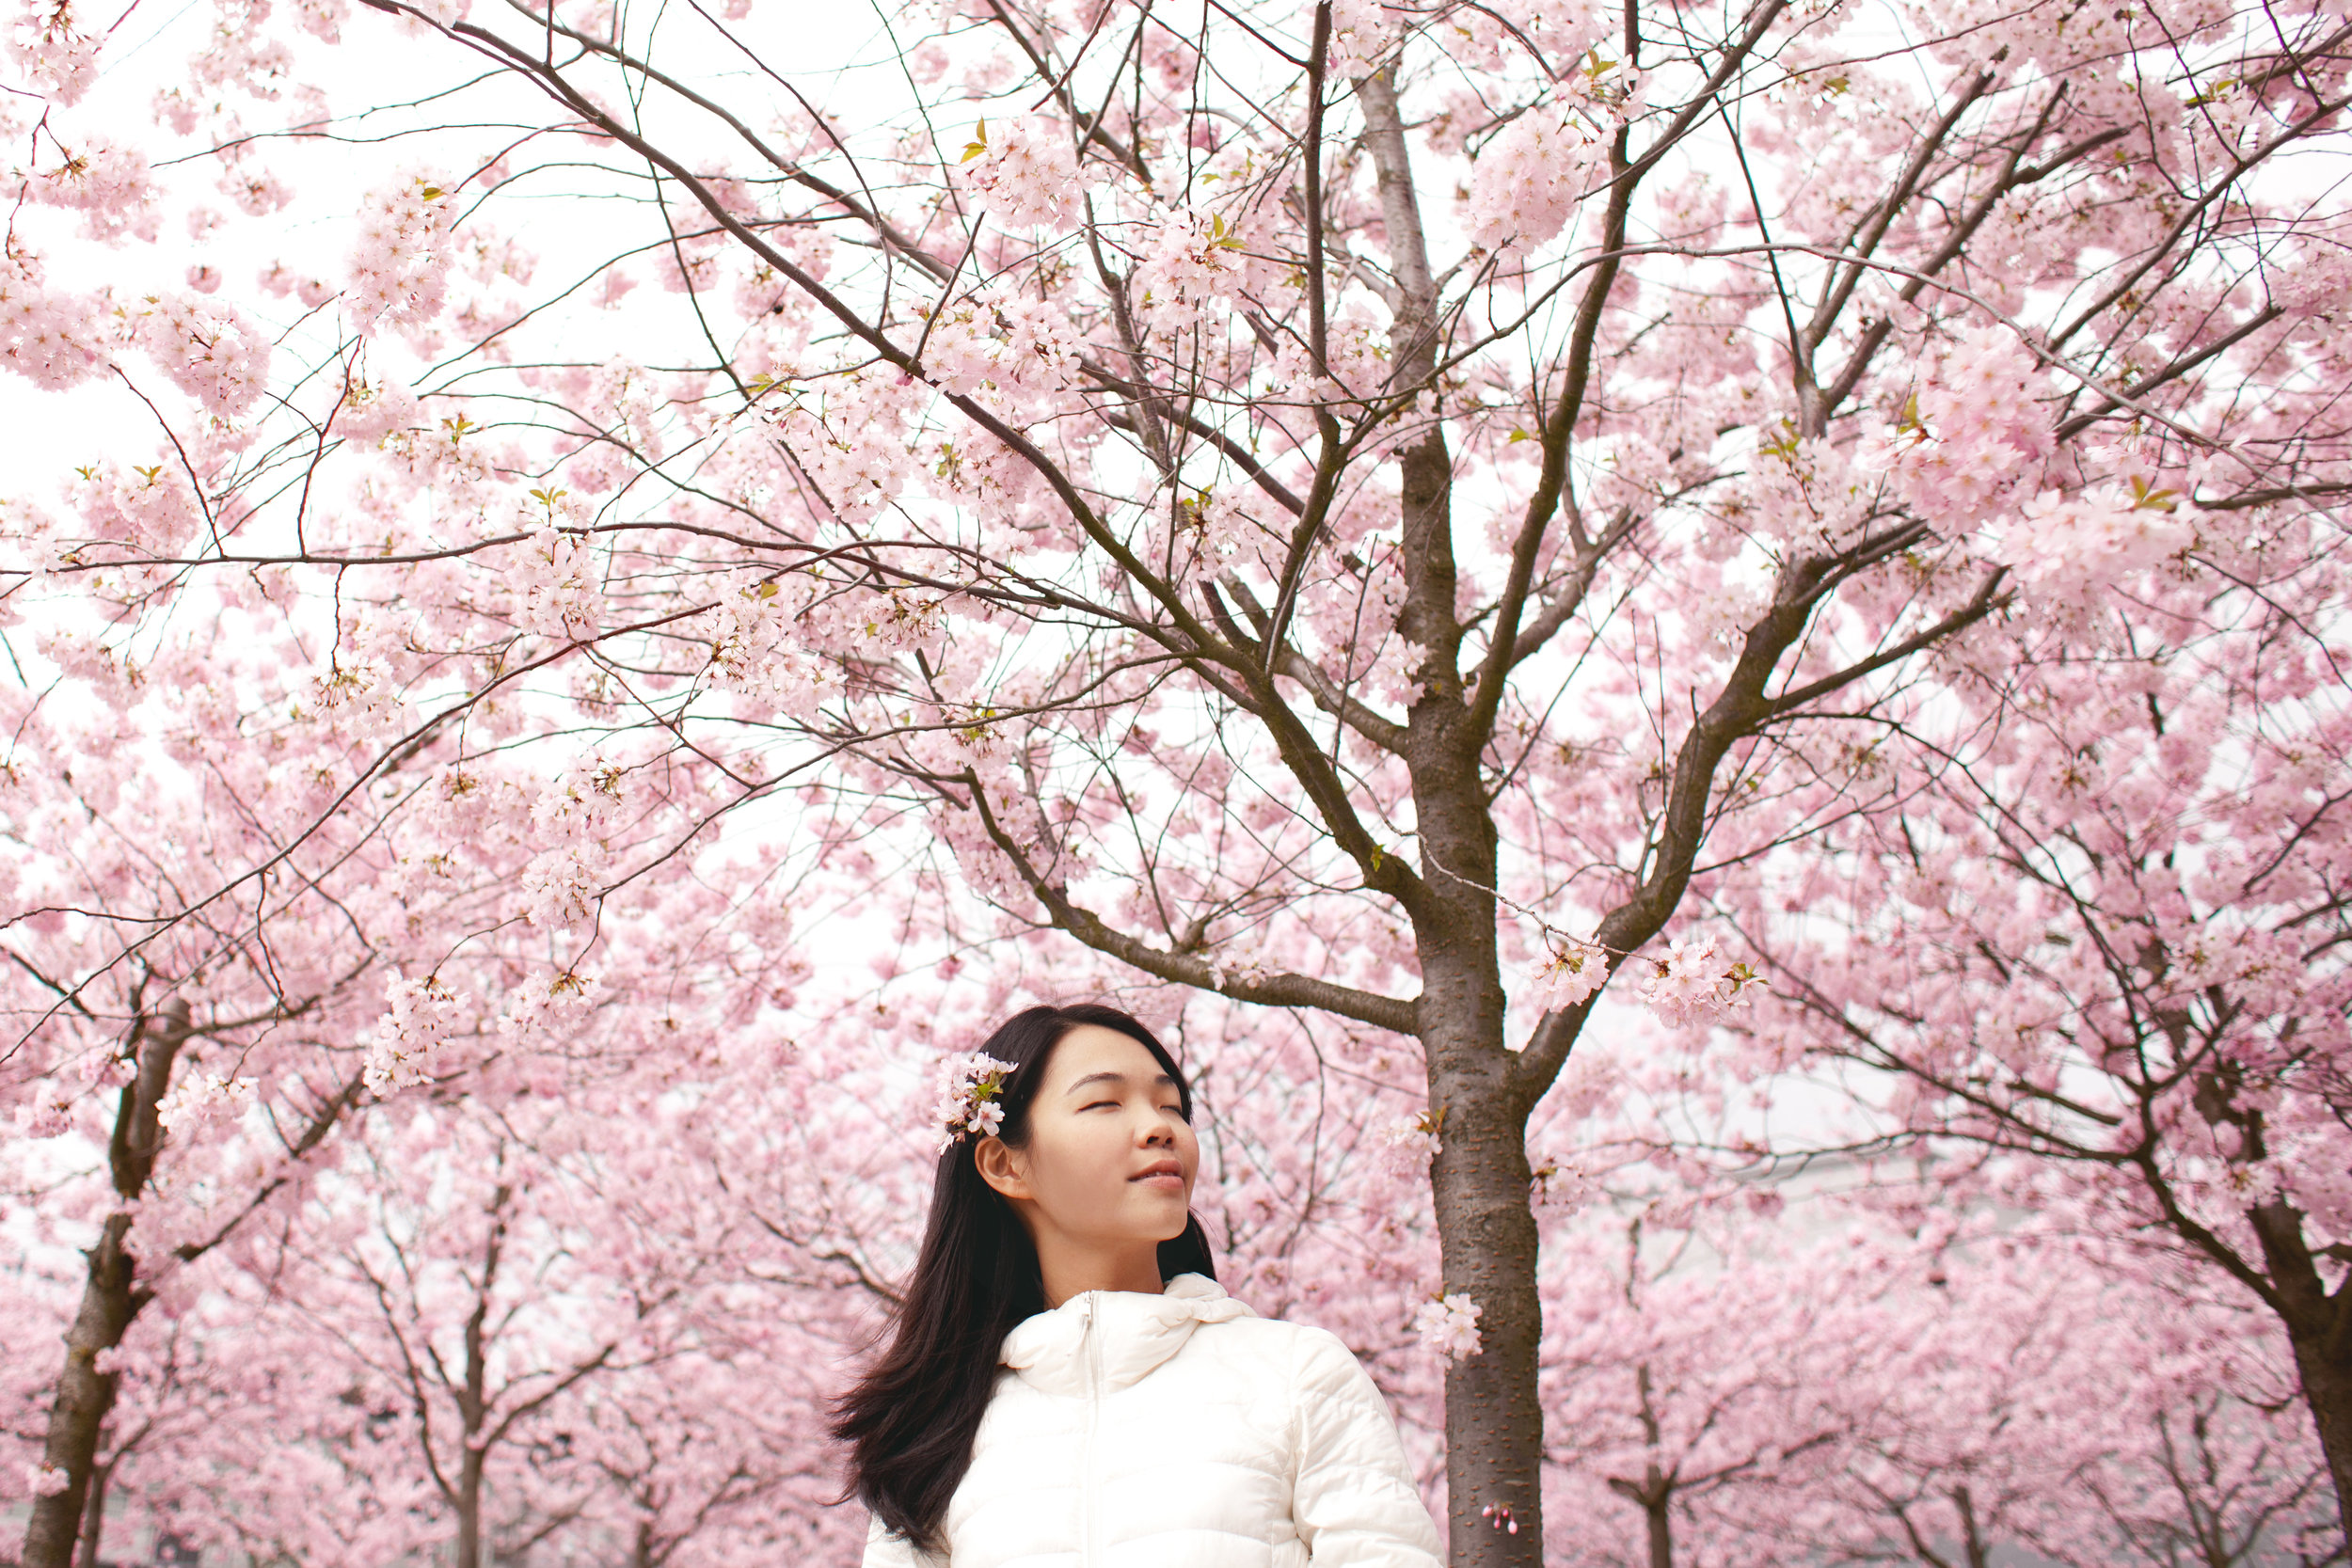 Asian girl among cherry blossoms.